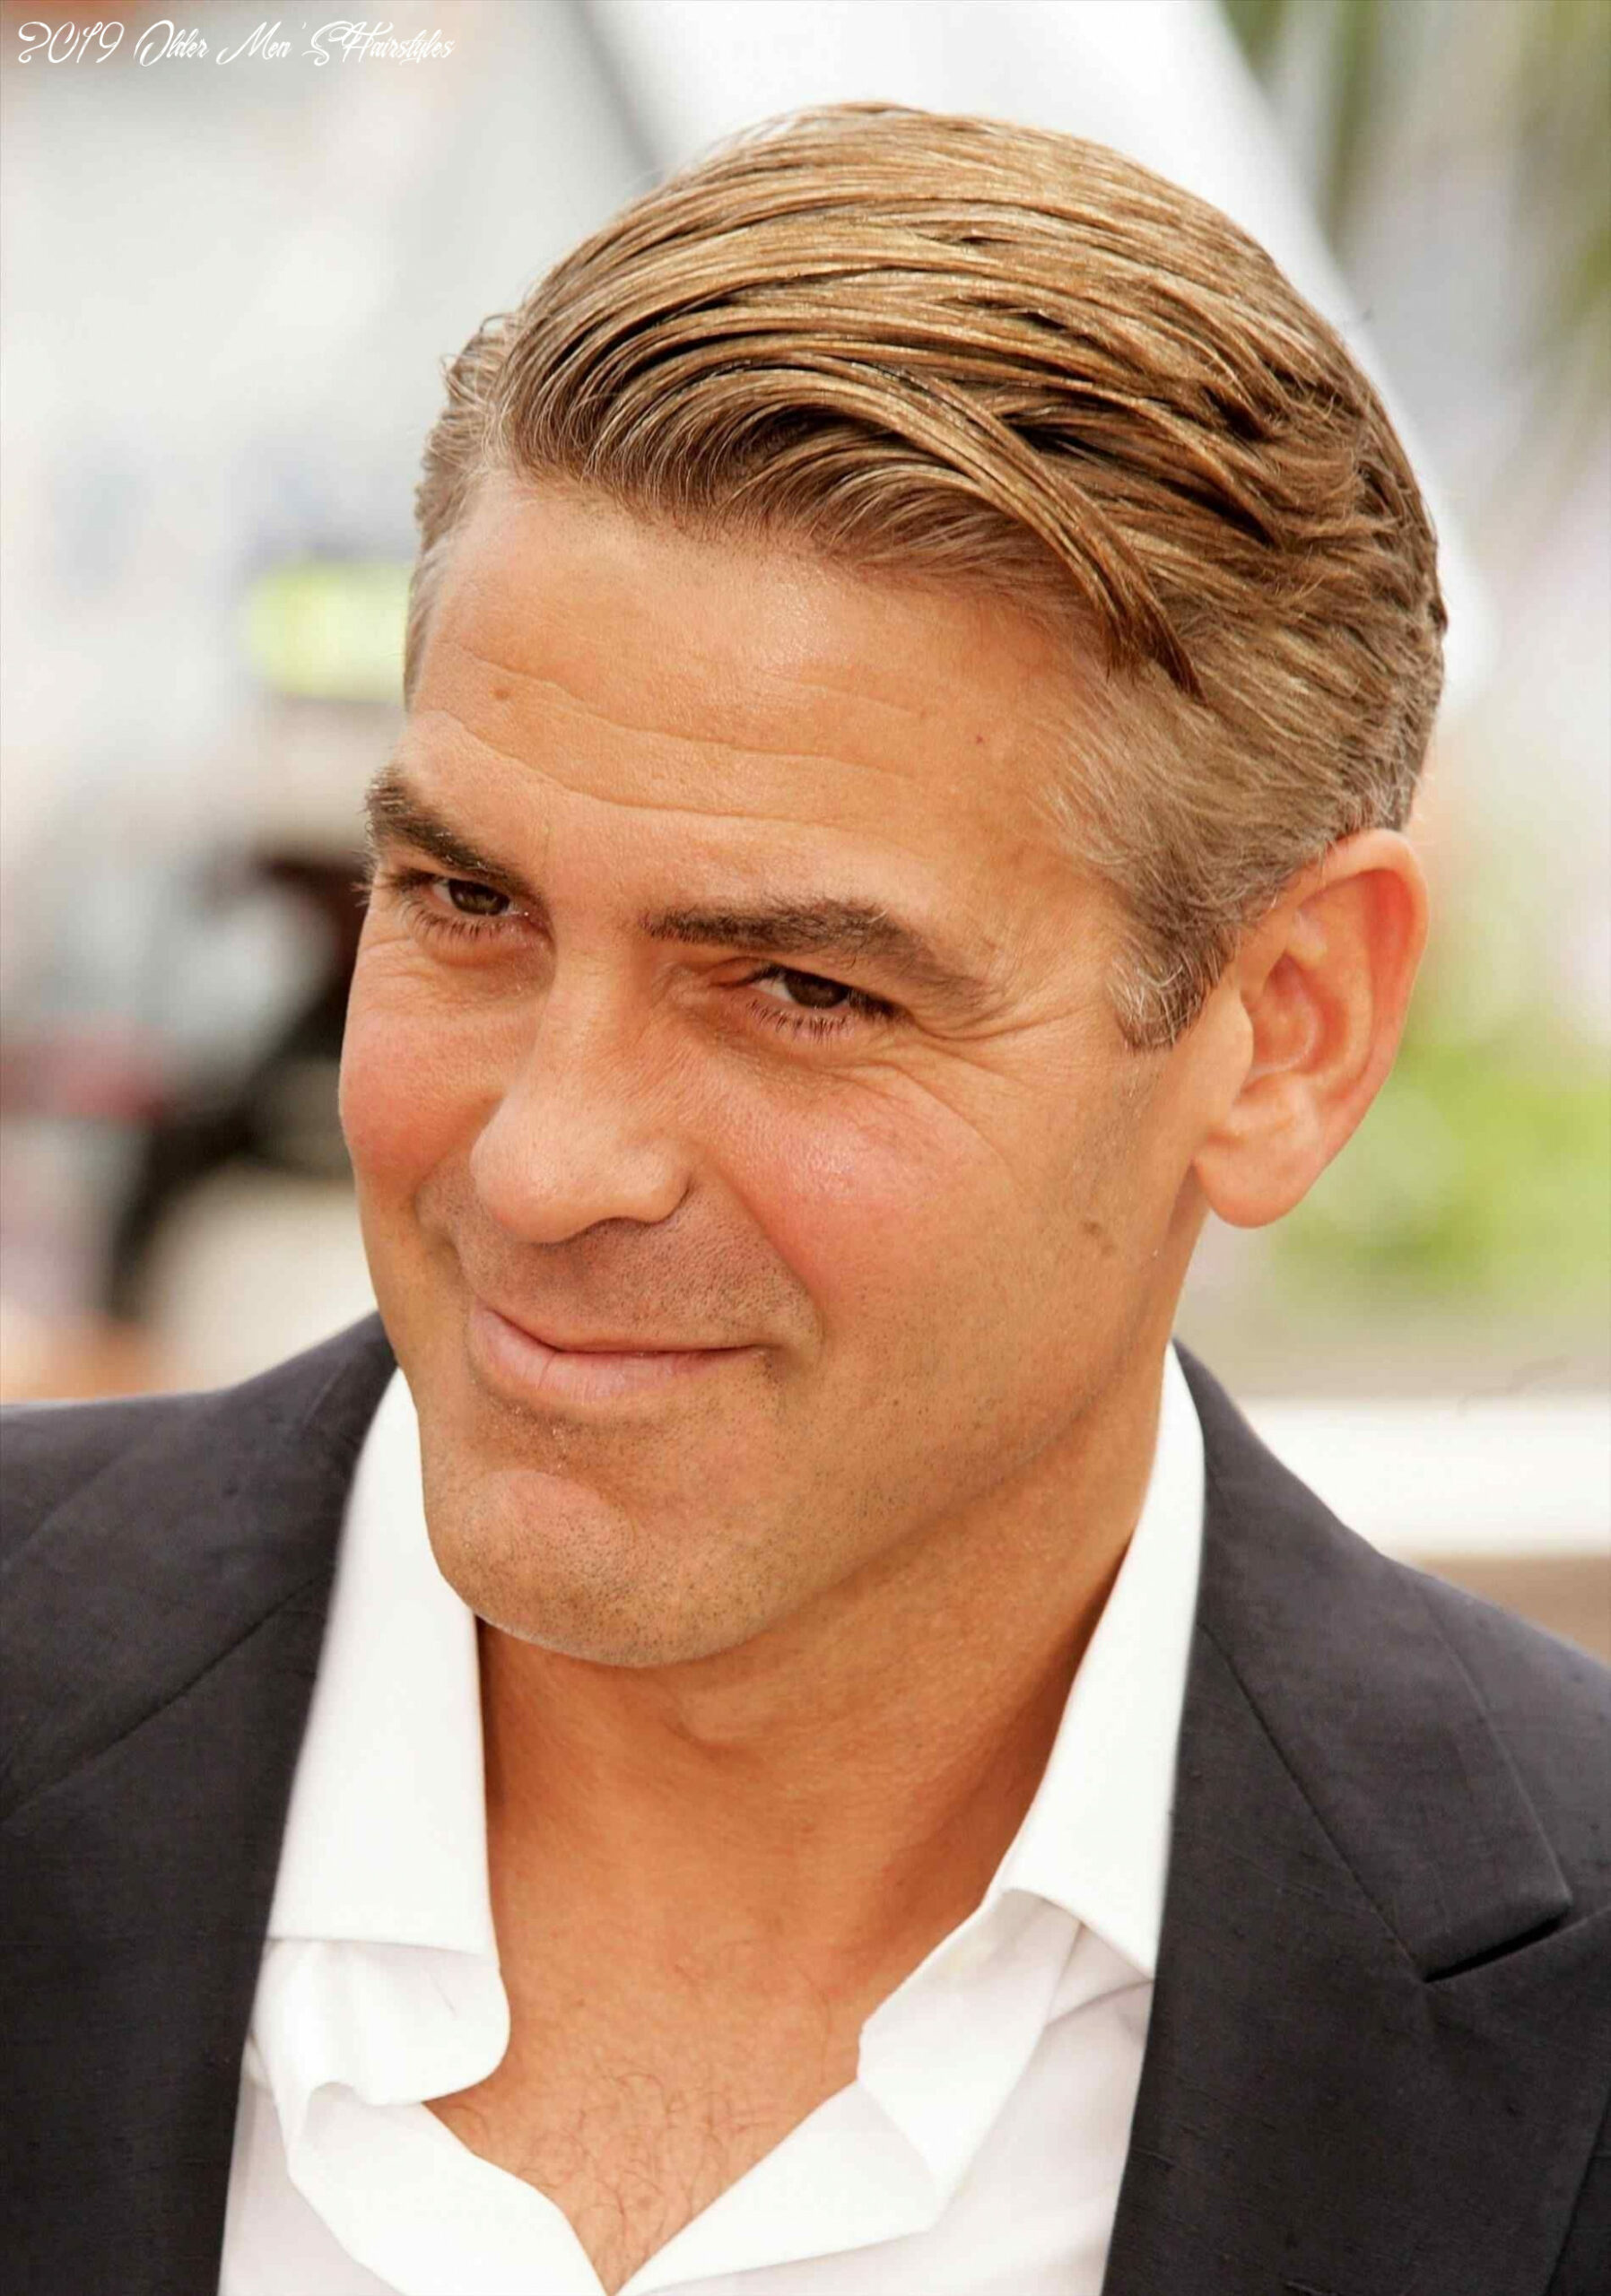 9 Mens Haircuts In 9 You Can Try For Your Style | Mens ...